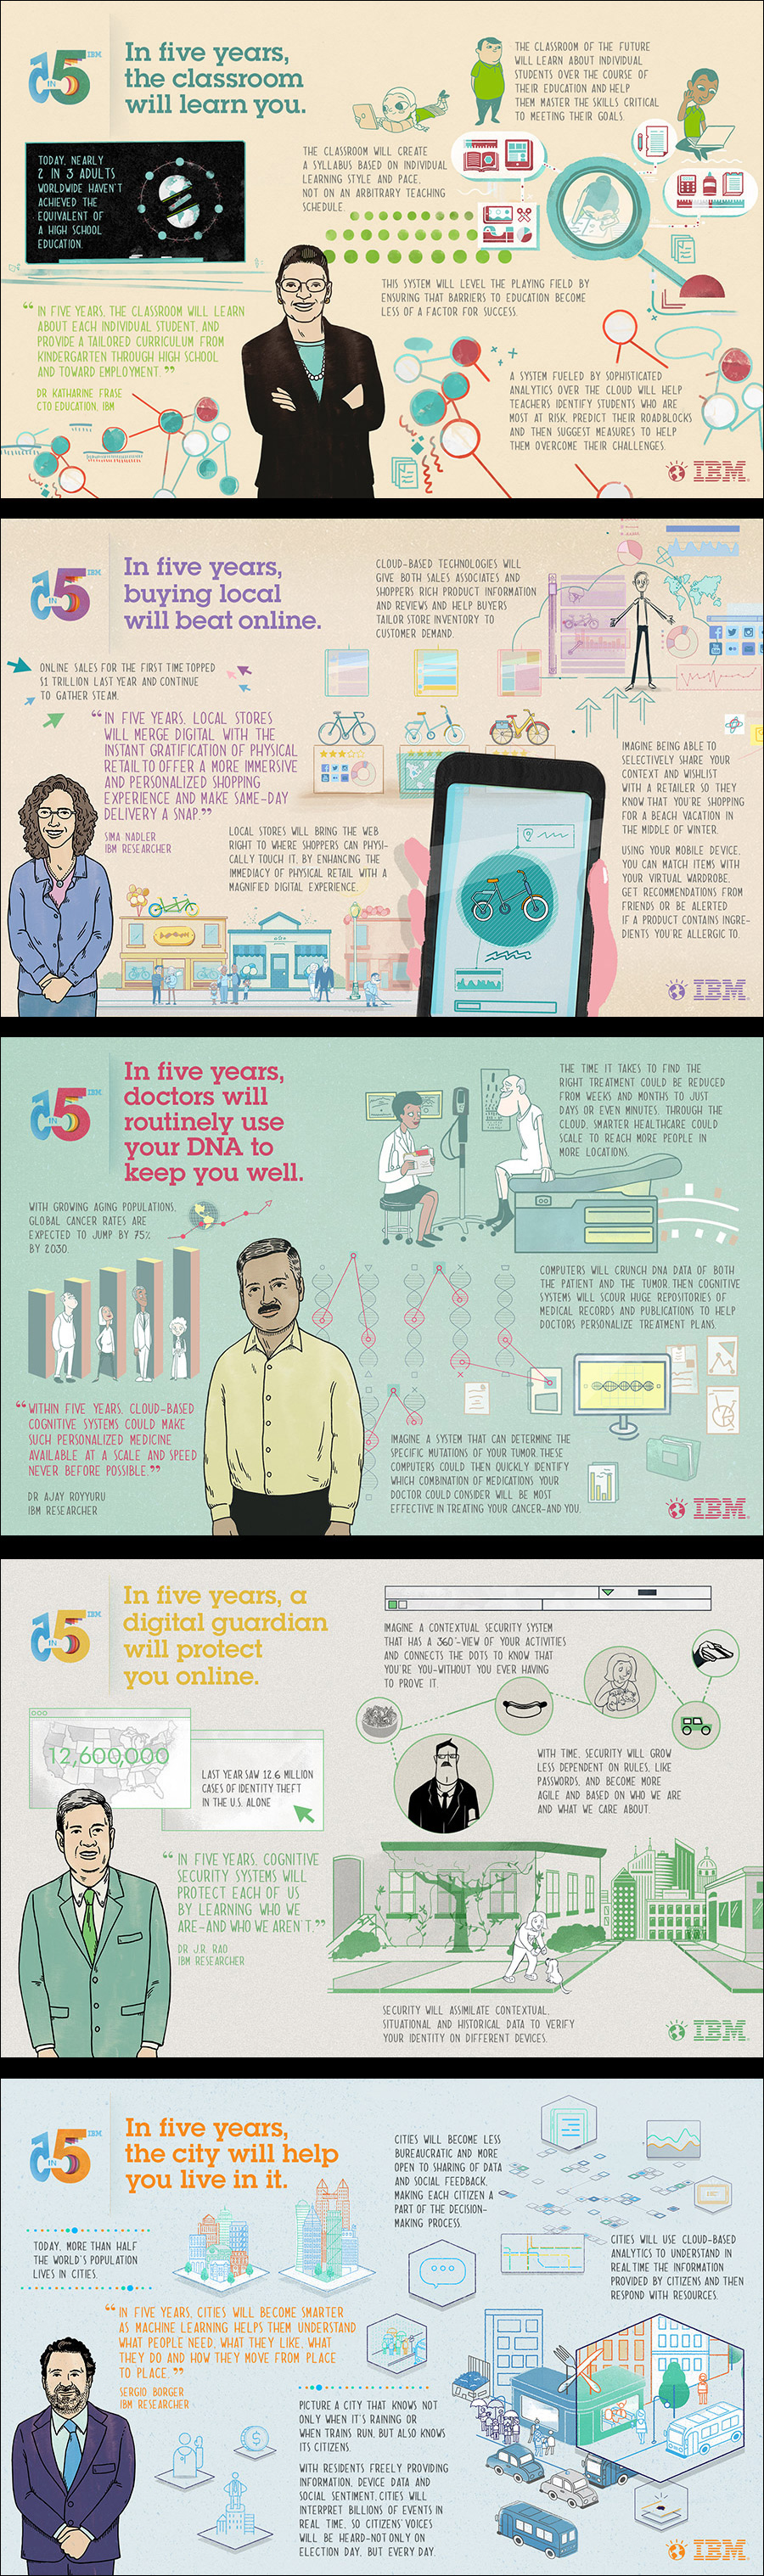 ibm-5-in-5-infographic